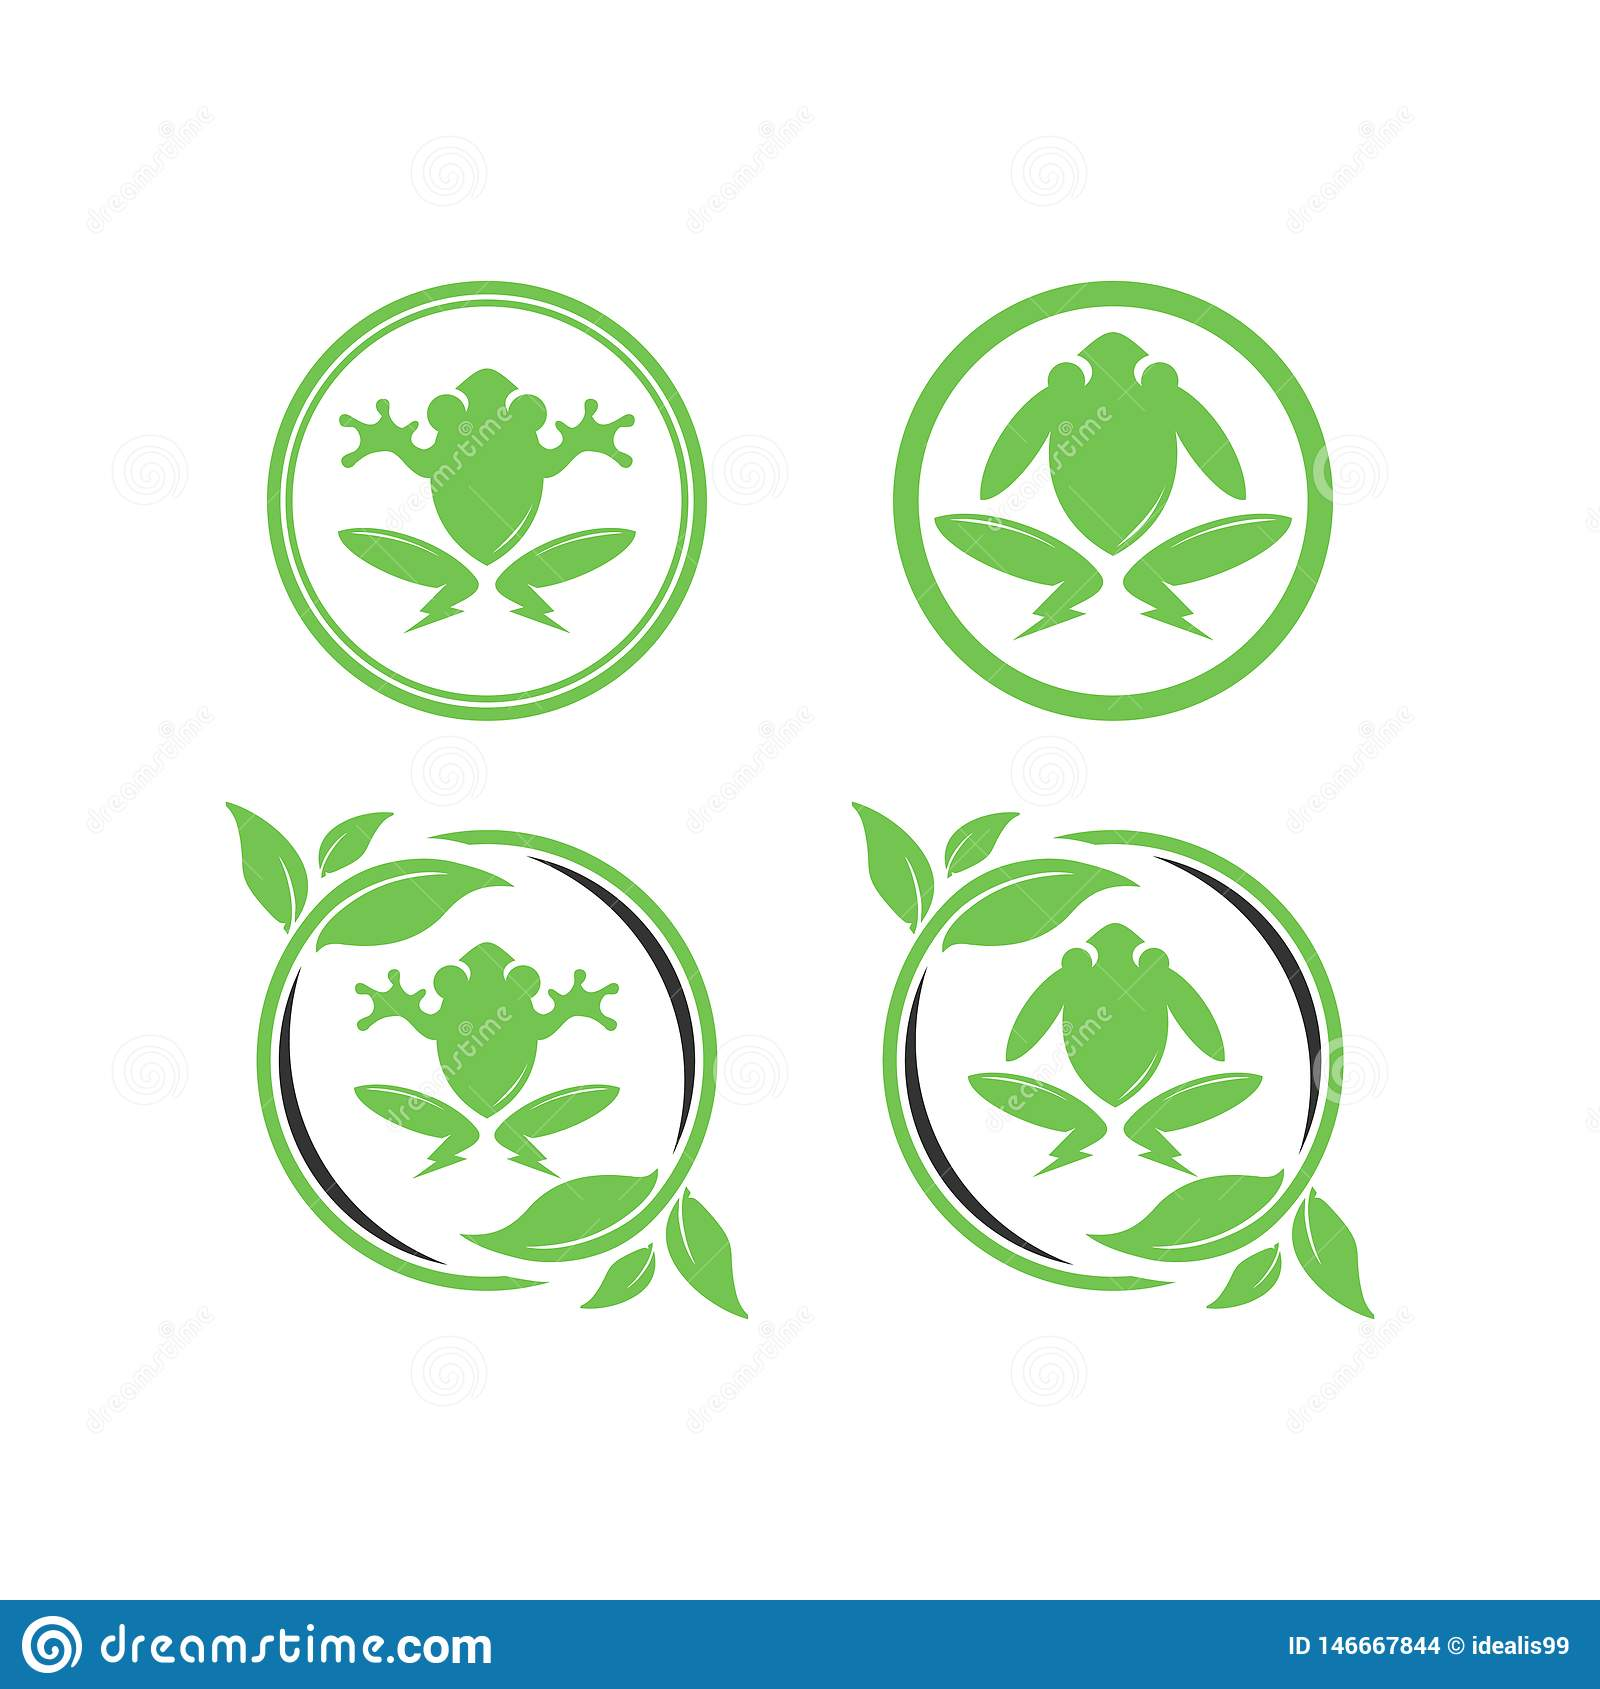 Green electric frog design